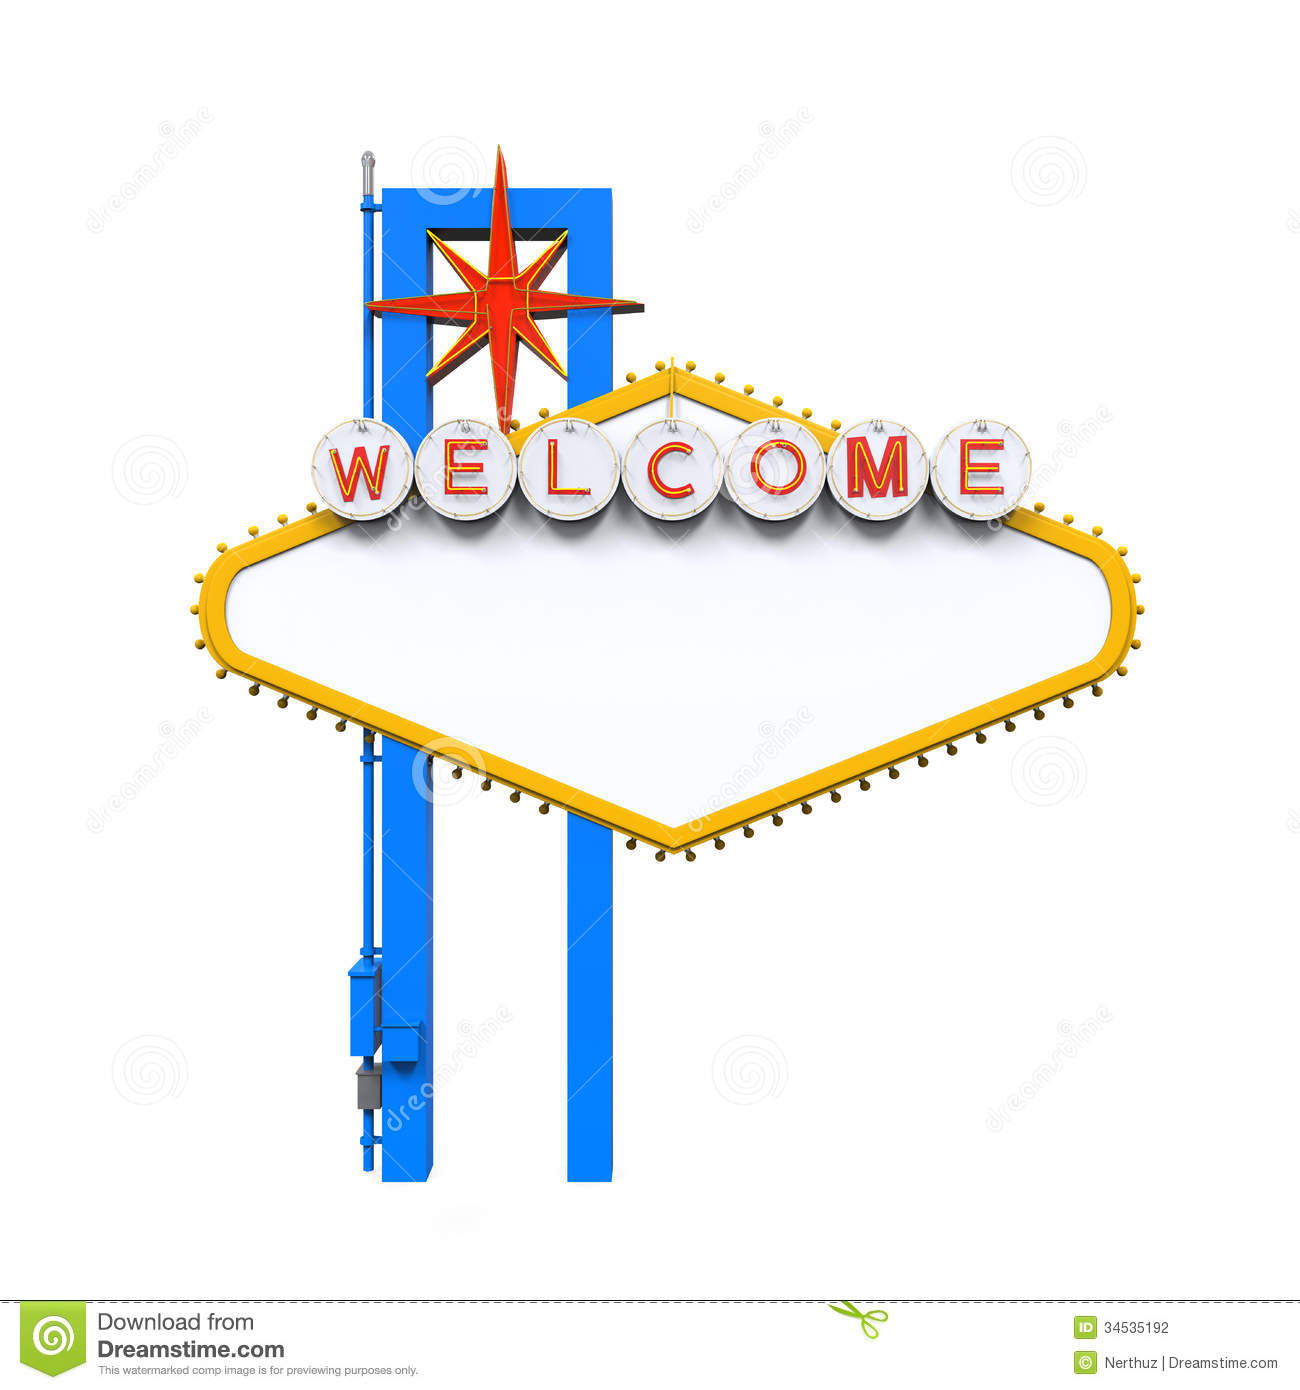 Stock images blank templates and signs hq clipart clipart royalty free Las Vegas Sign Clip Art & Look At Clip Art Images - ClipartLook clipart royalty free